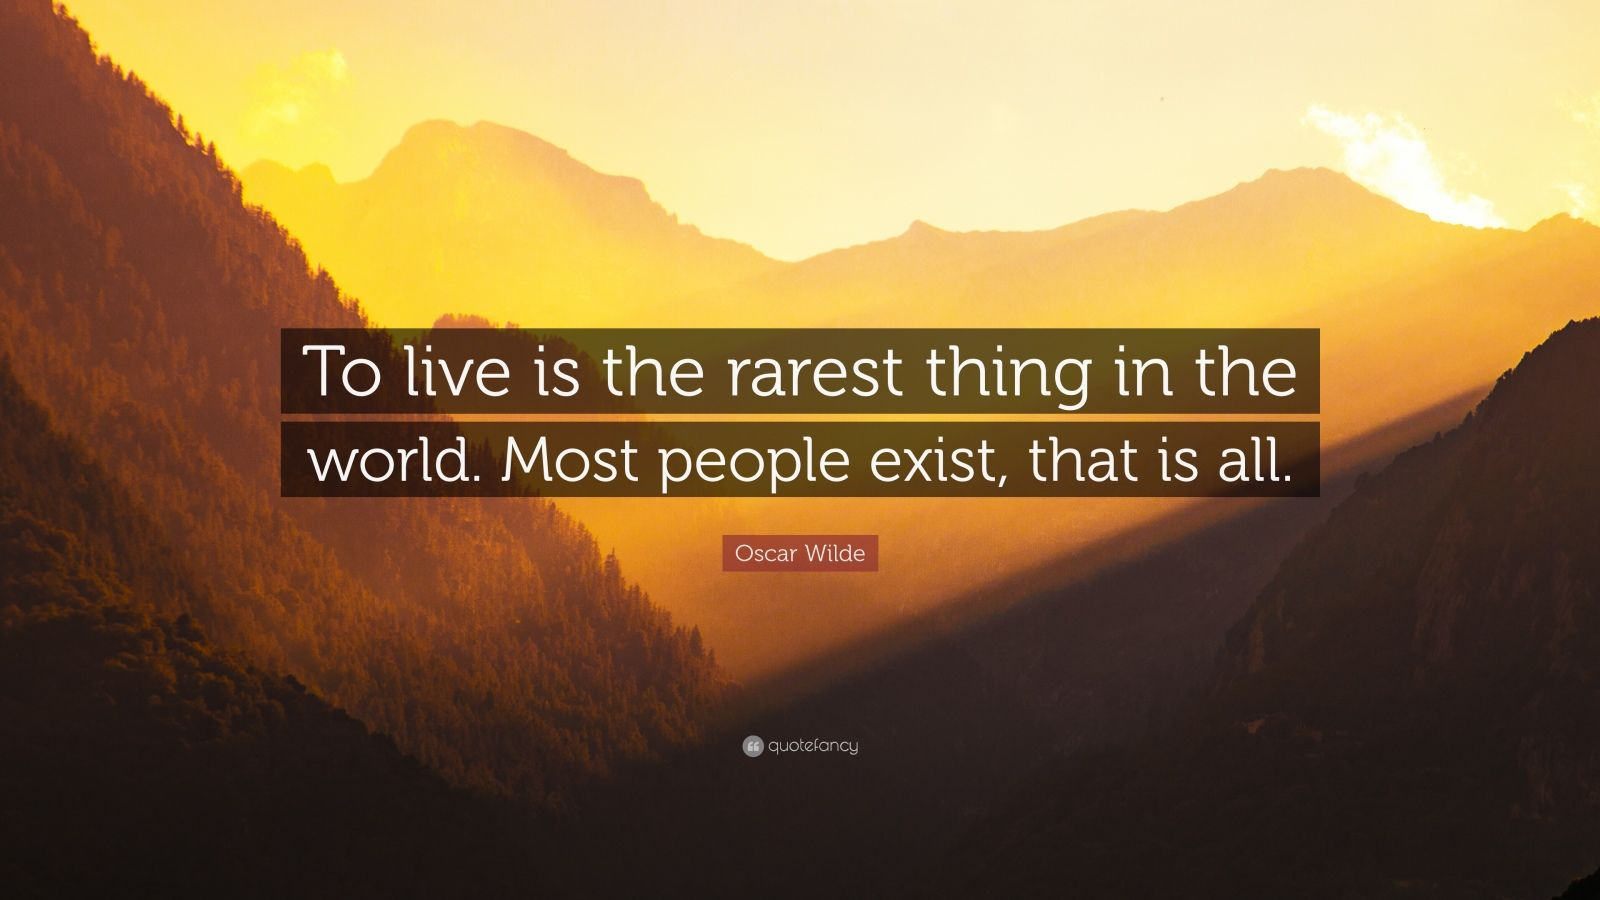 to live is the rarest thing in the world essay World's largest collection of essays published by experts share your essayscom is the home of thousands of essays published by experts like you publish your original essays now.